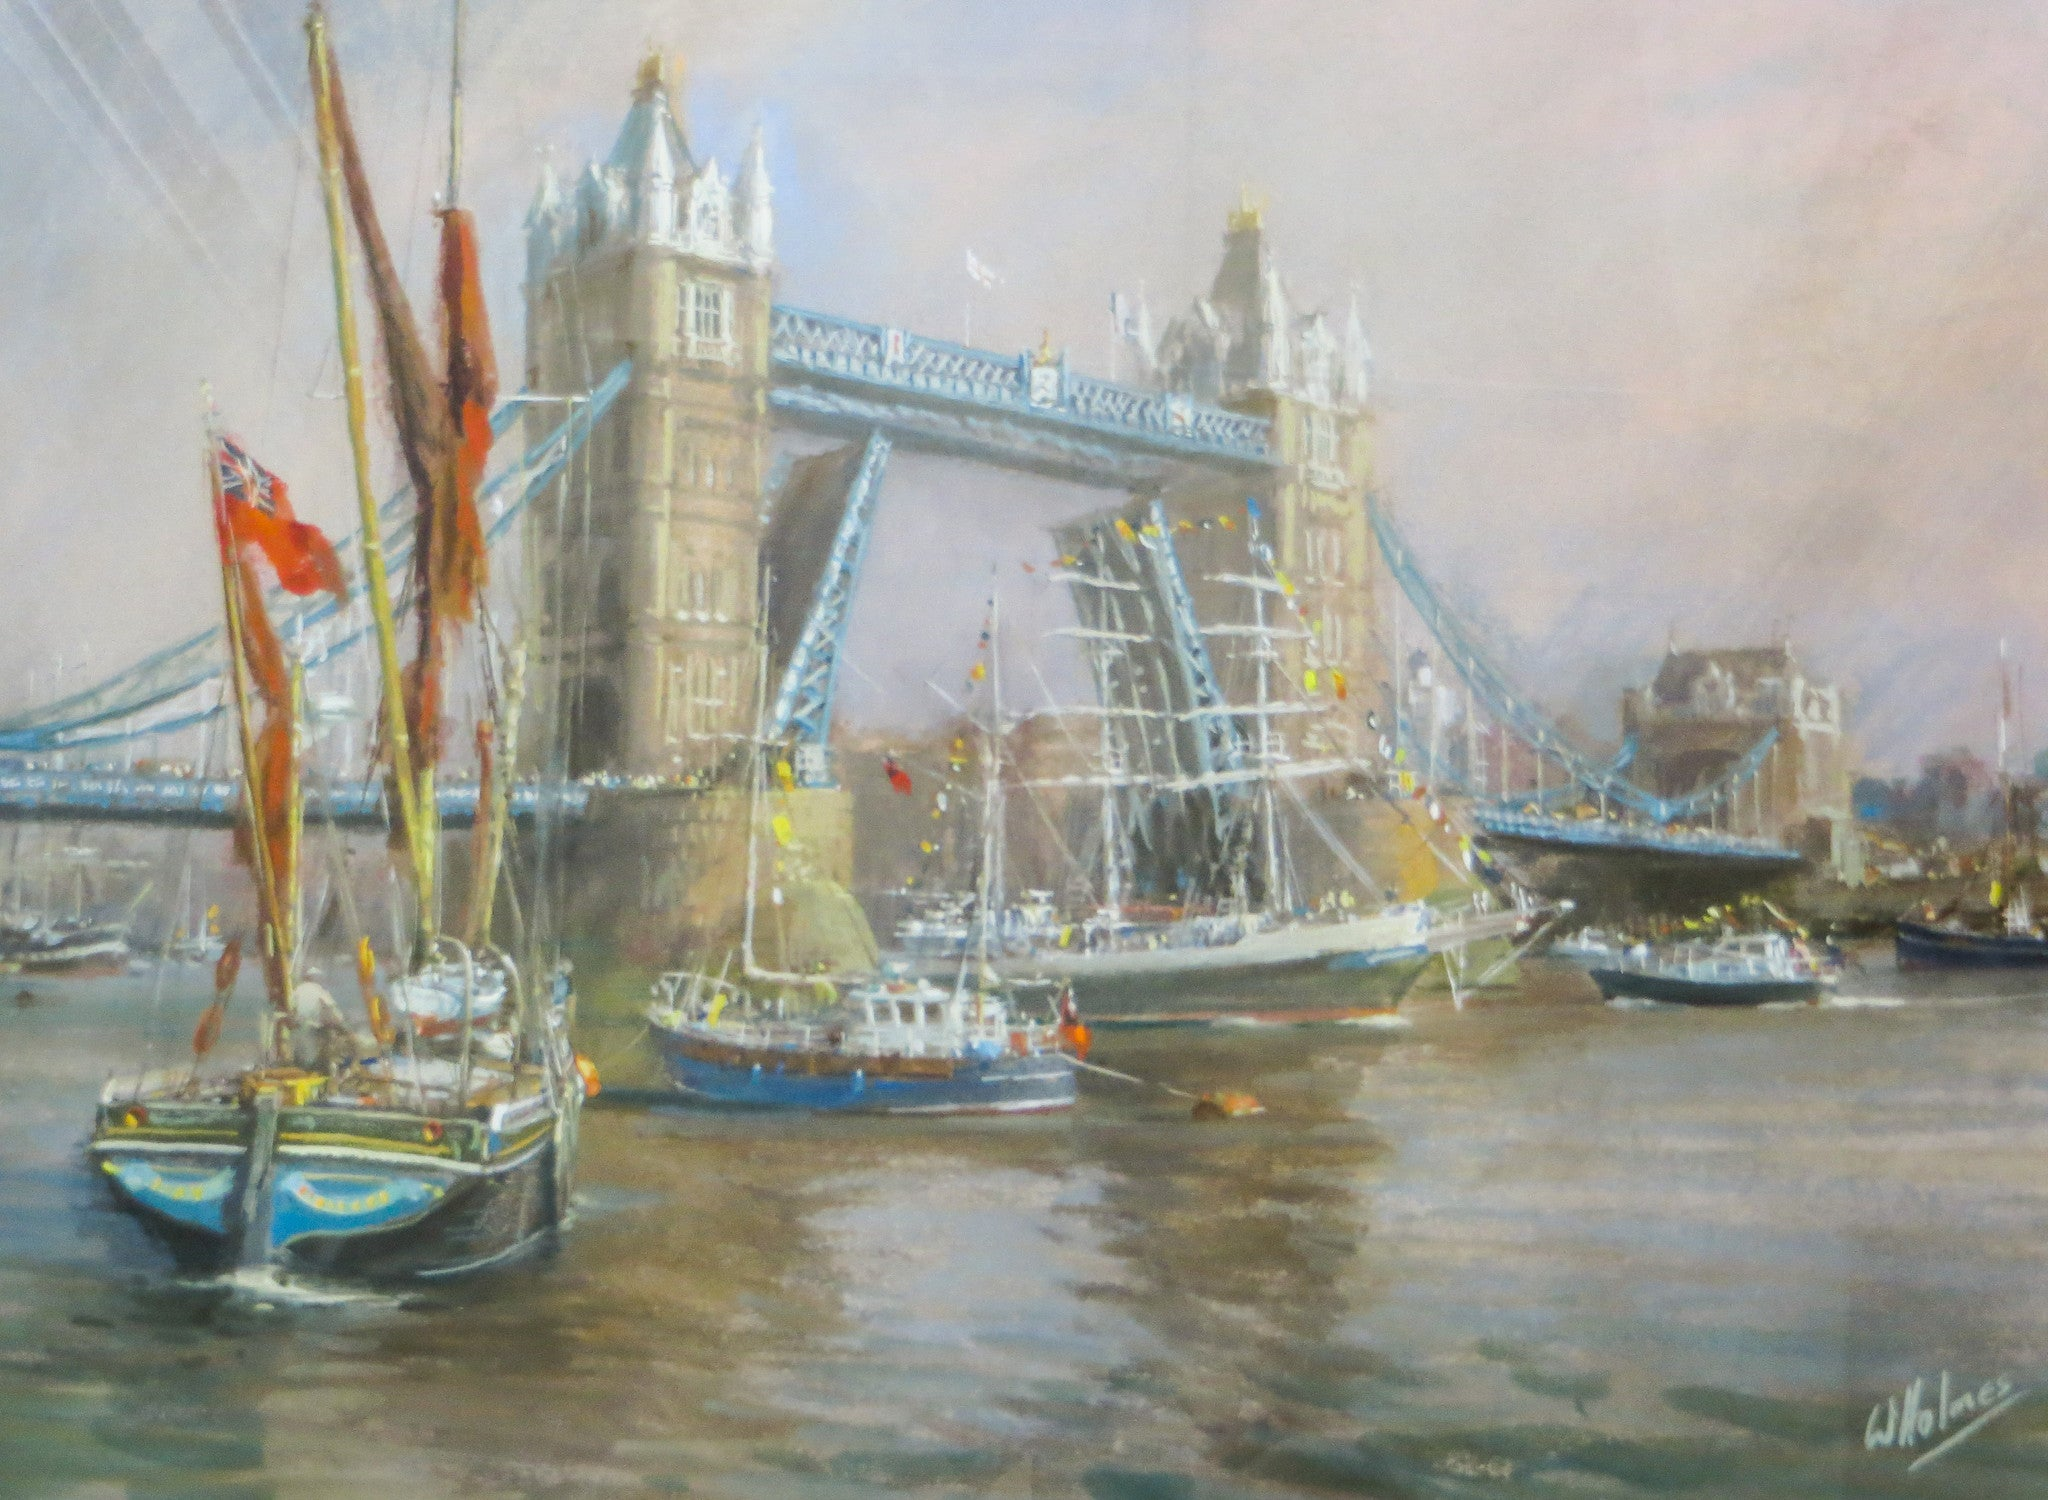 Paintings For Sale Online At The Wallington Gallery Free